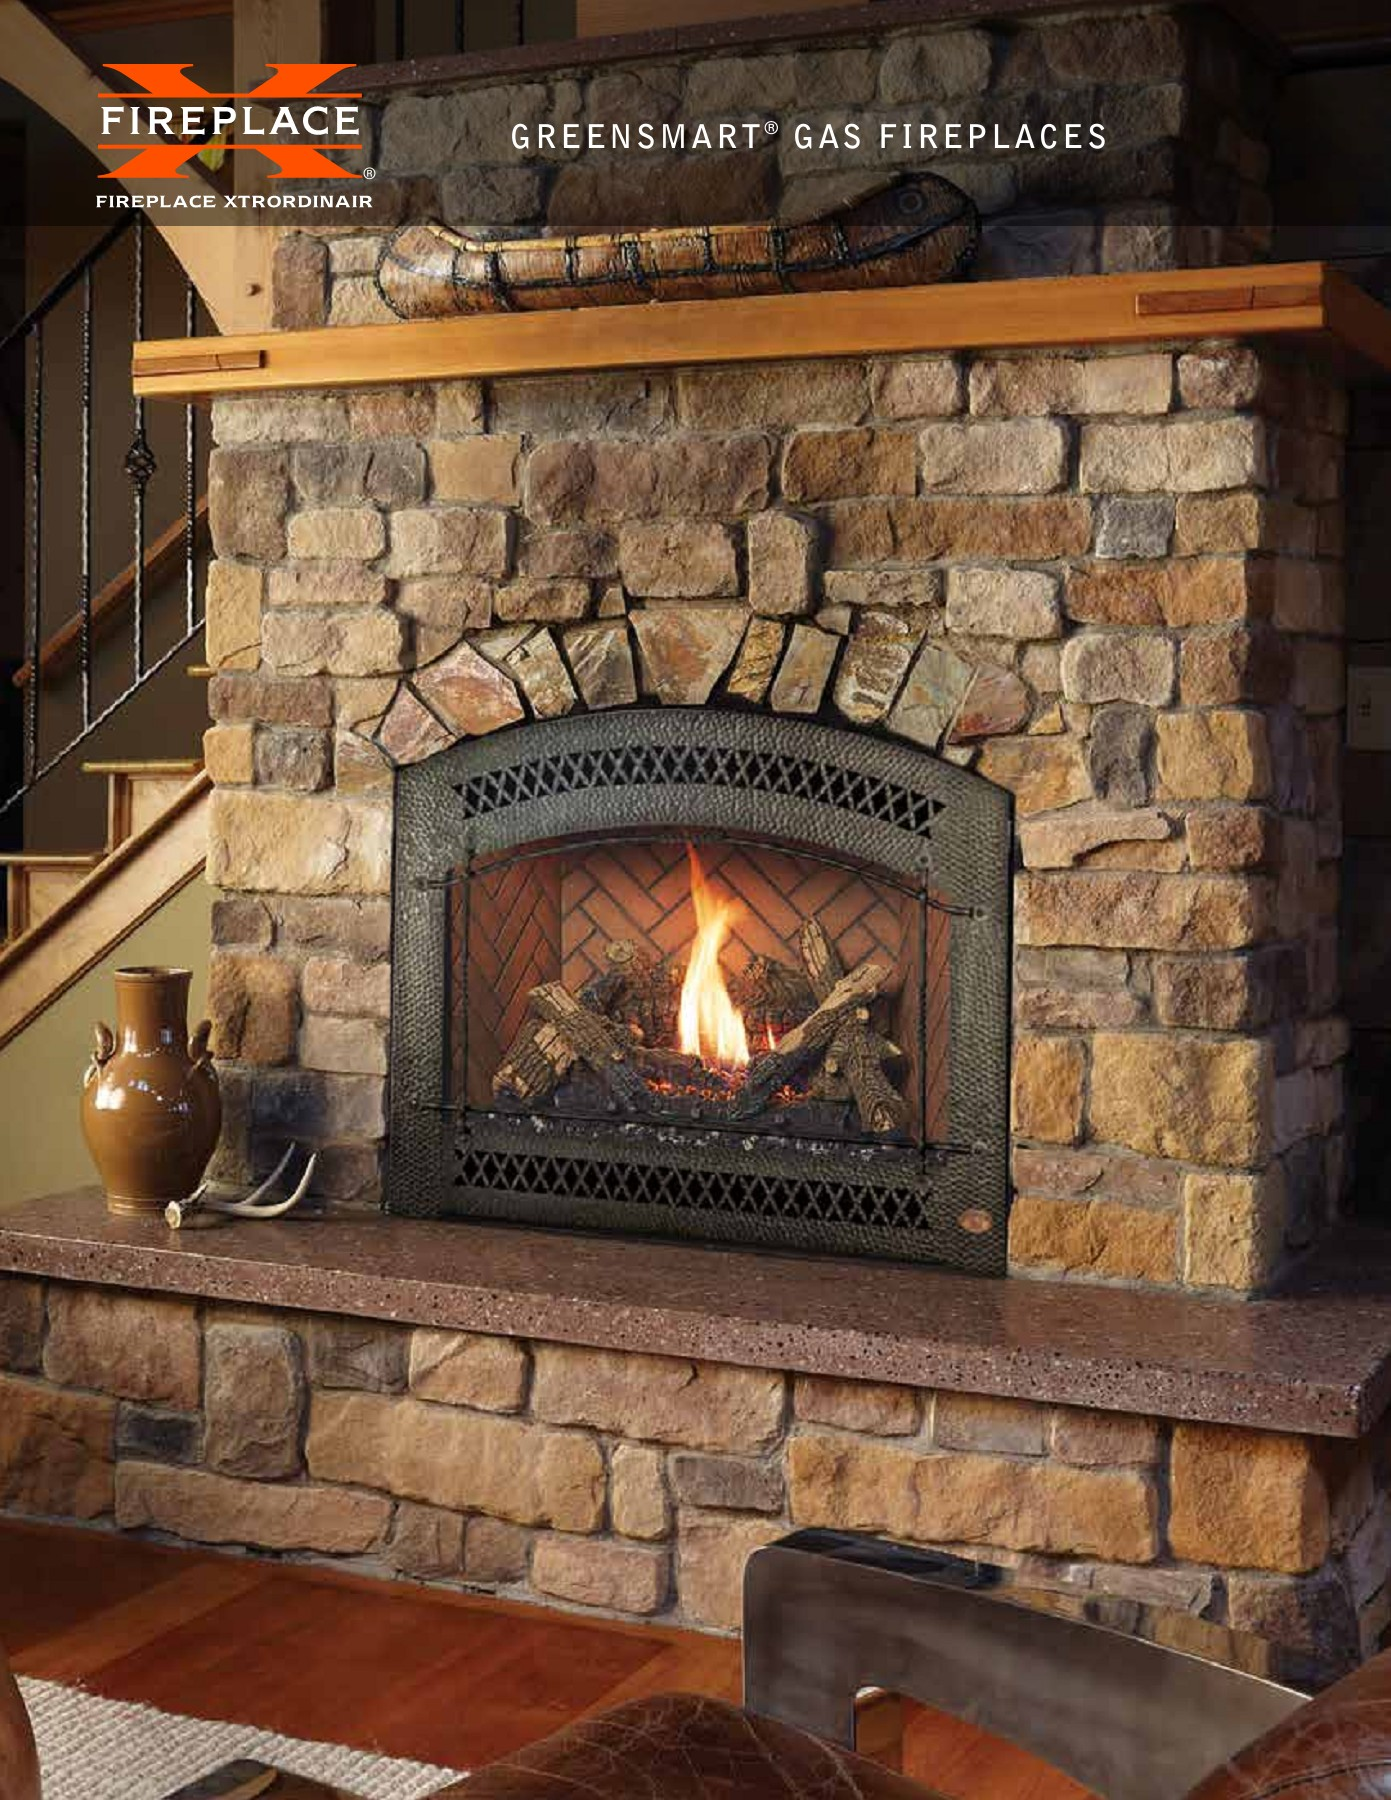 Wall Mounted Natural Gas Fireplace Fresh Greensmart Gas Fireplaces Travis Dealer Pages 1 36